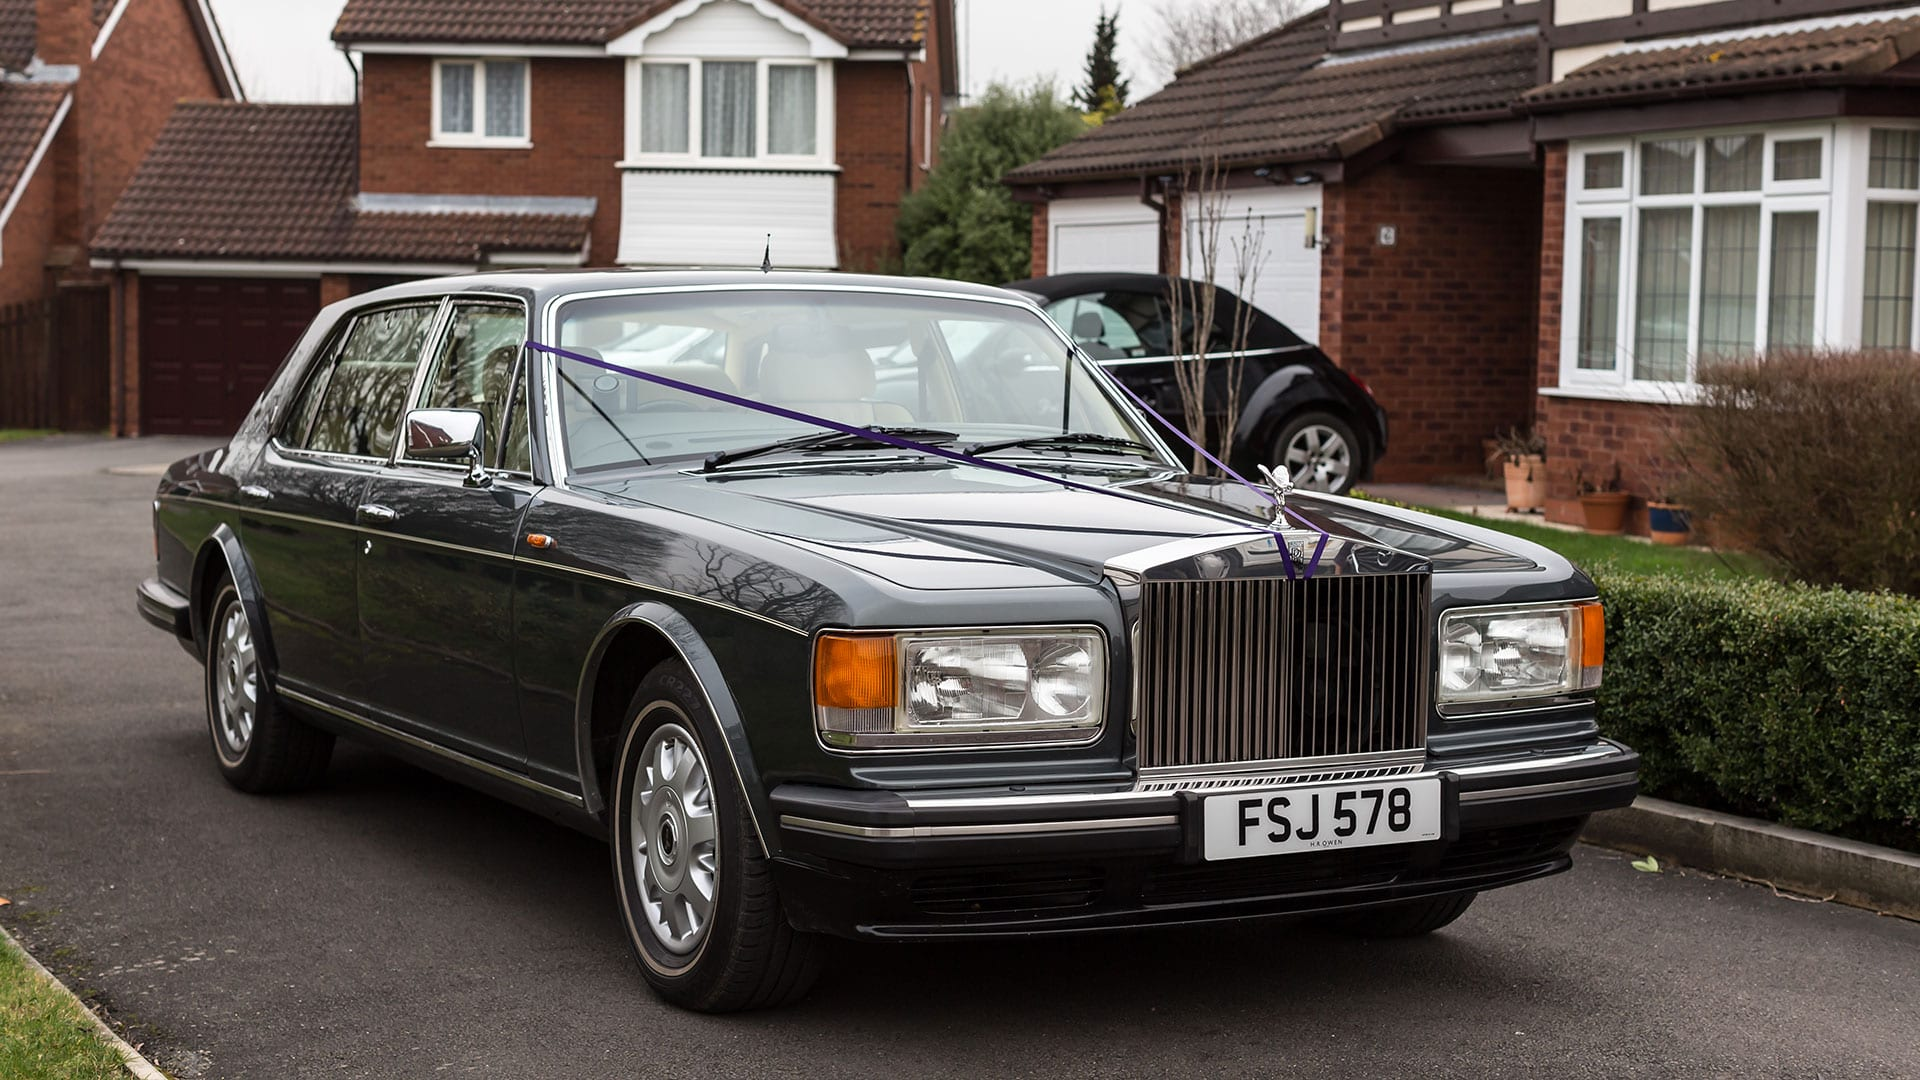 The Rolls-Royce Flying Spur wedding car